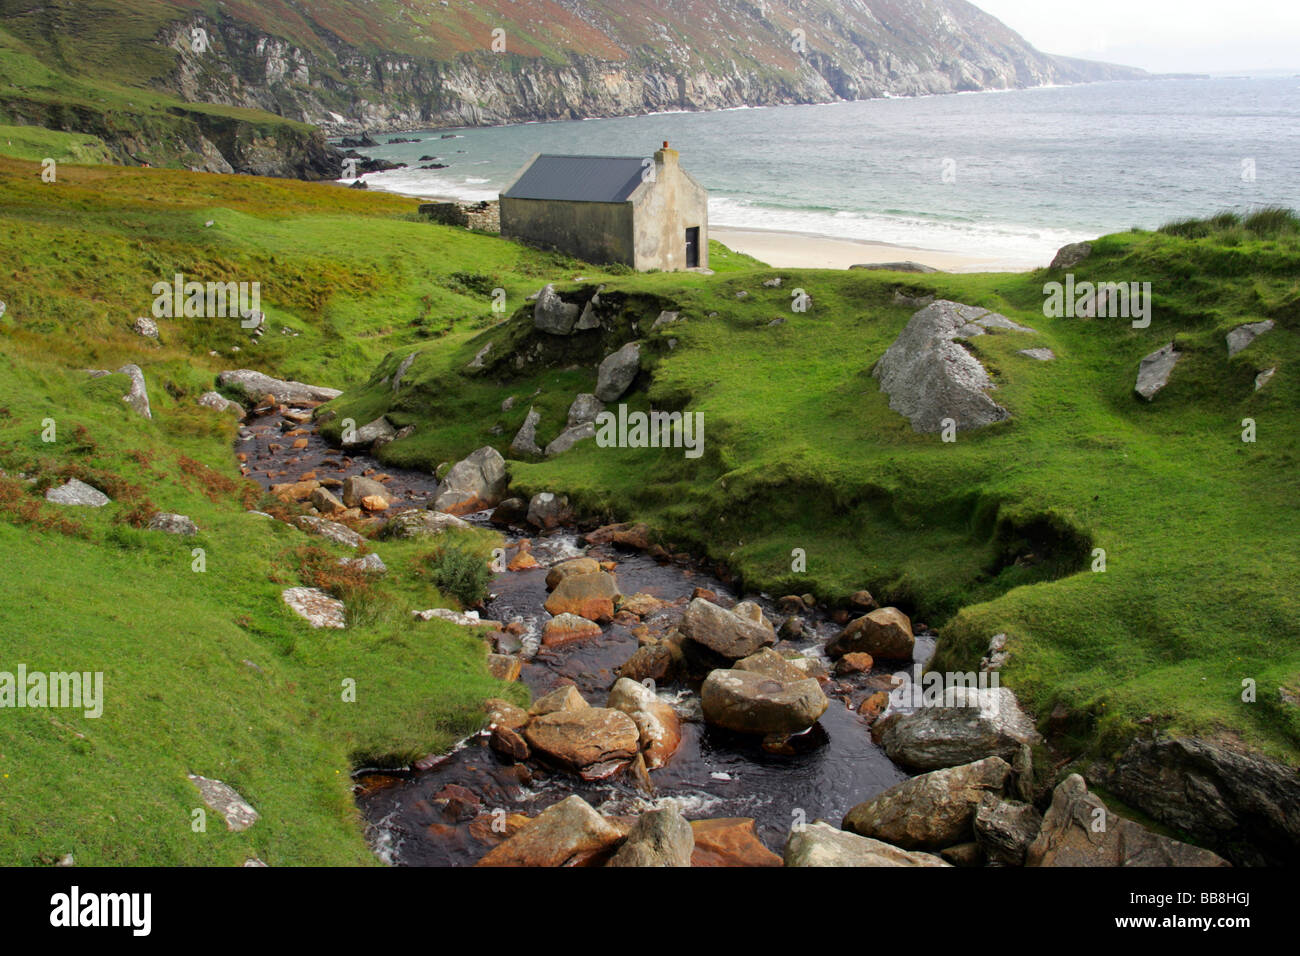 stone cottage an der k ste in der n he von keel achill island county mayo irland stockfoto. Black Bedroom Furniture Sets. Home Design Ideas